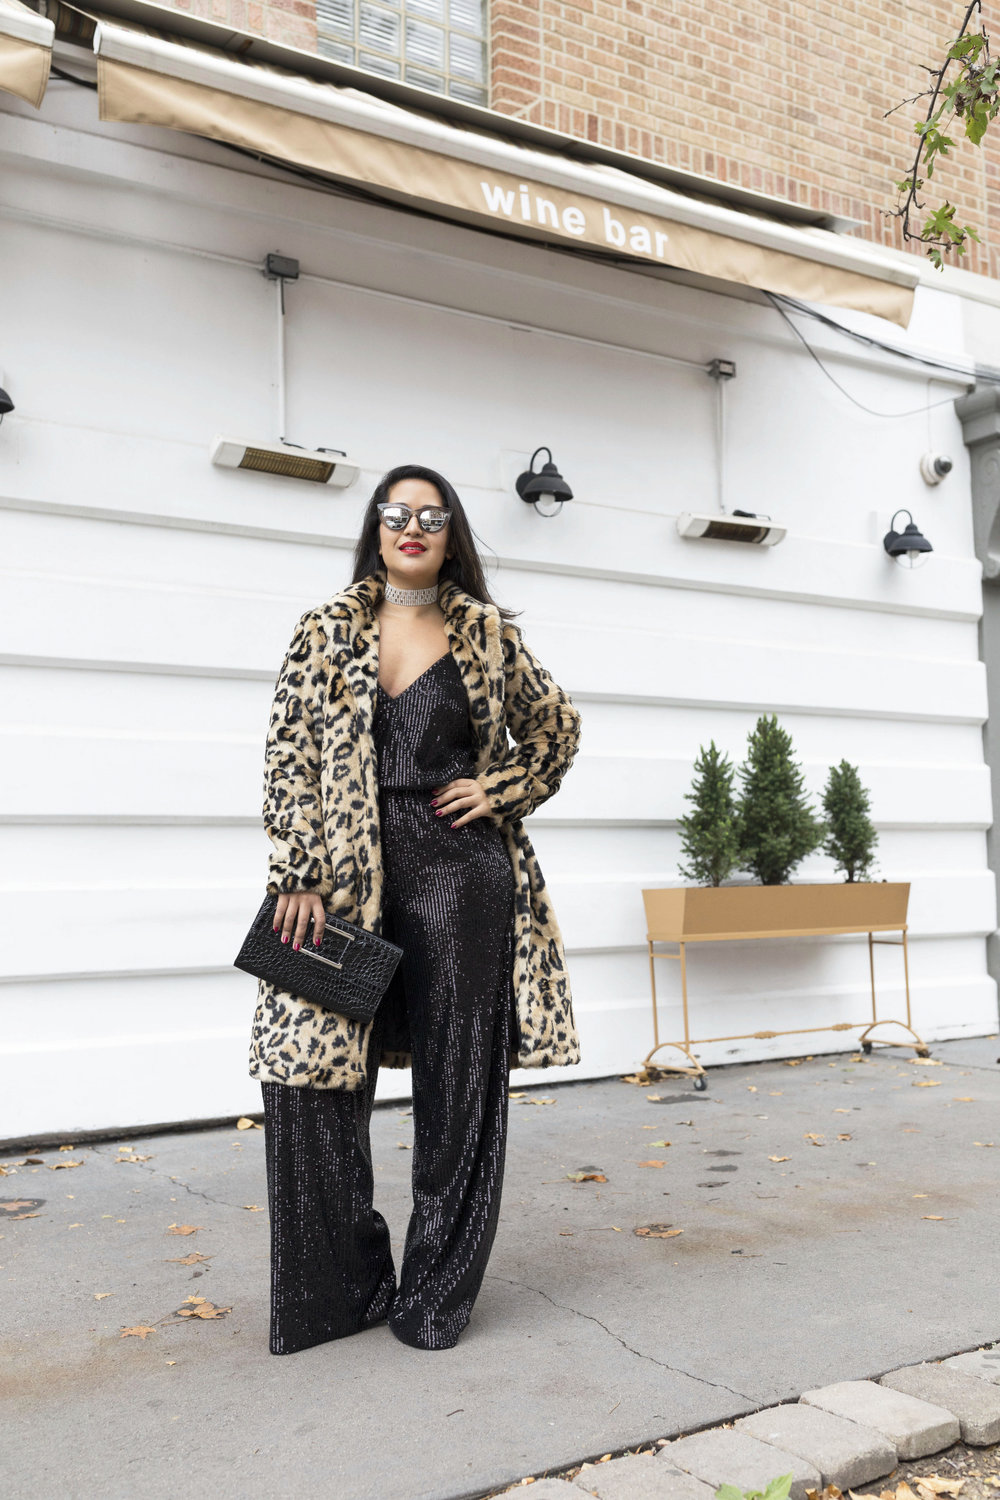 Krity S x New Years Eve Outfit x Sequin Jumpsuit and Cheetah Faux Fur3.jpg